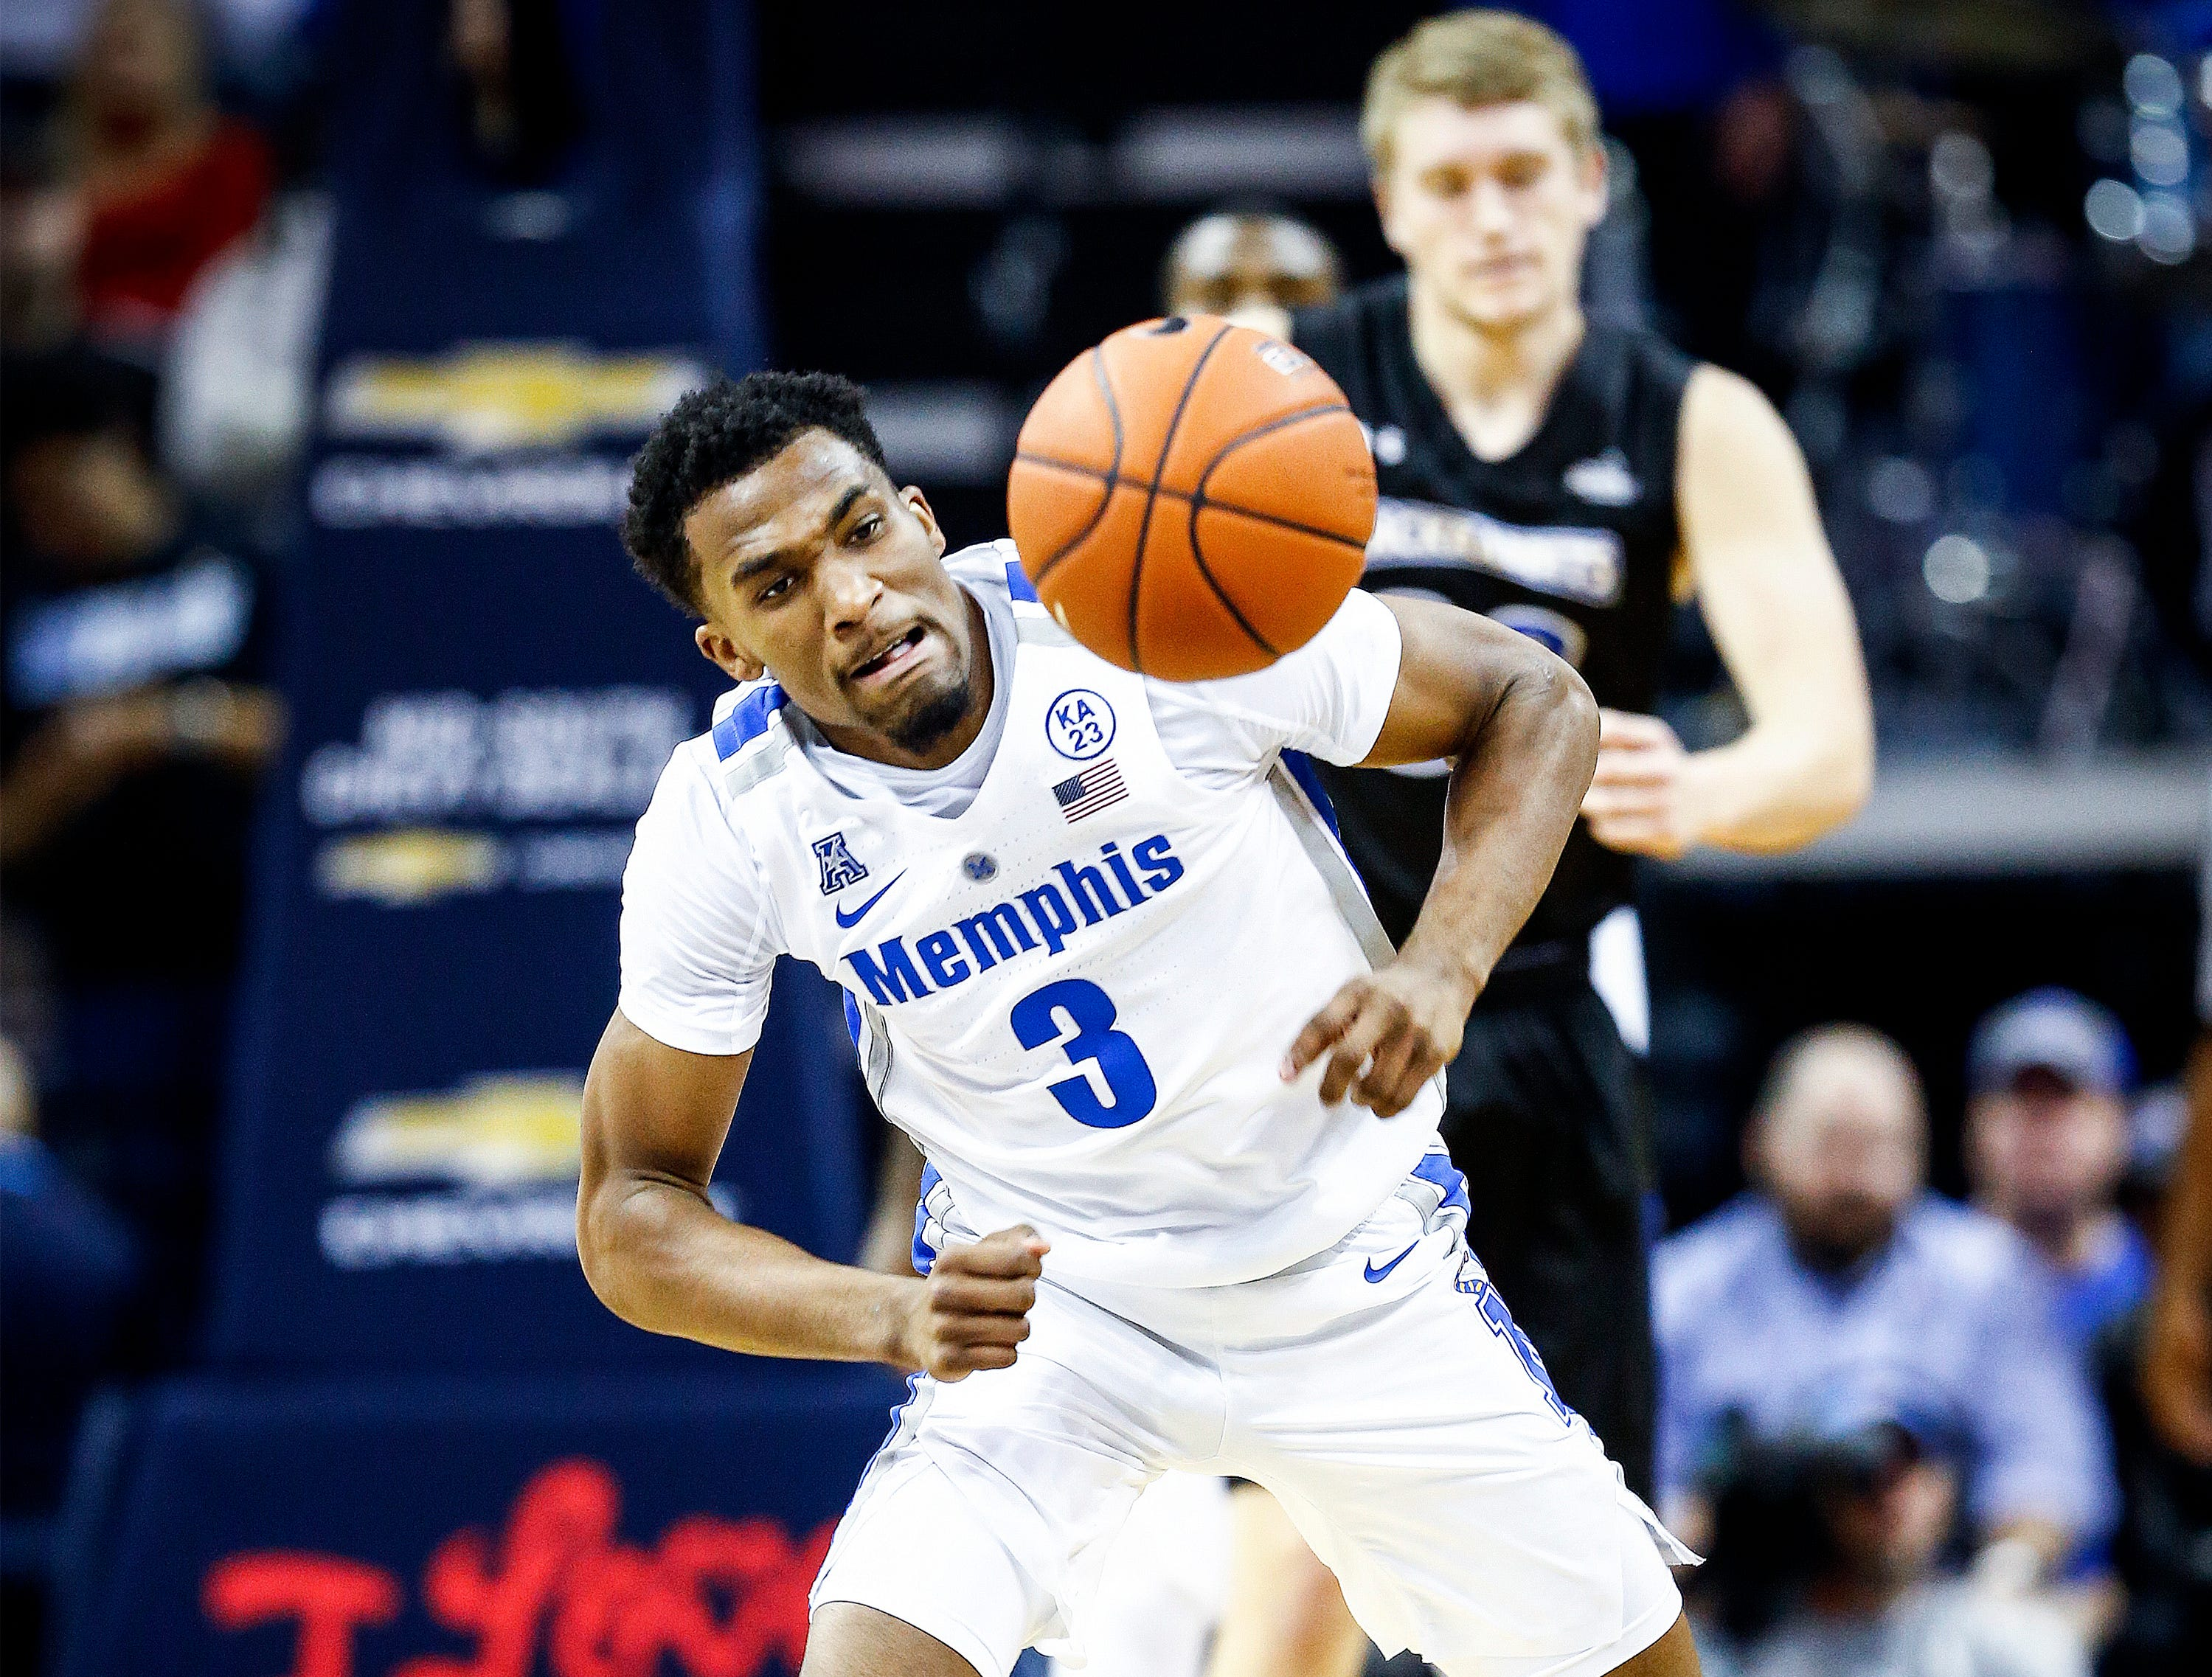 Memphis guard Jeremiah Martin grabs a loose ball during action against South Dakota State at the FedExFourm., Tuesday, December 4, 2018.